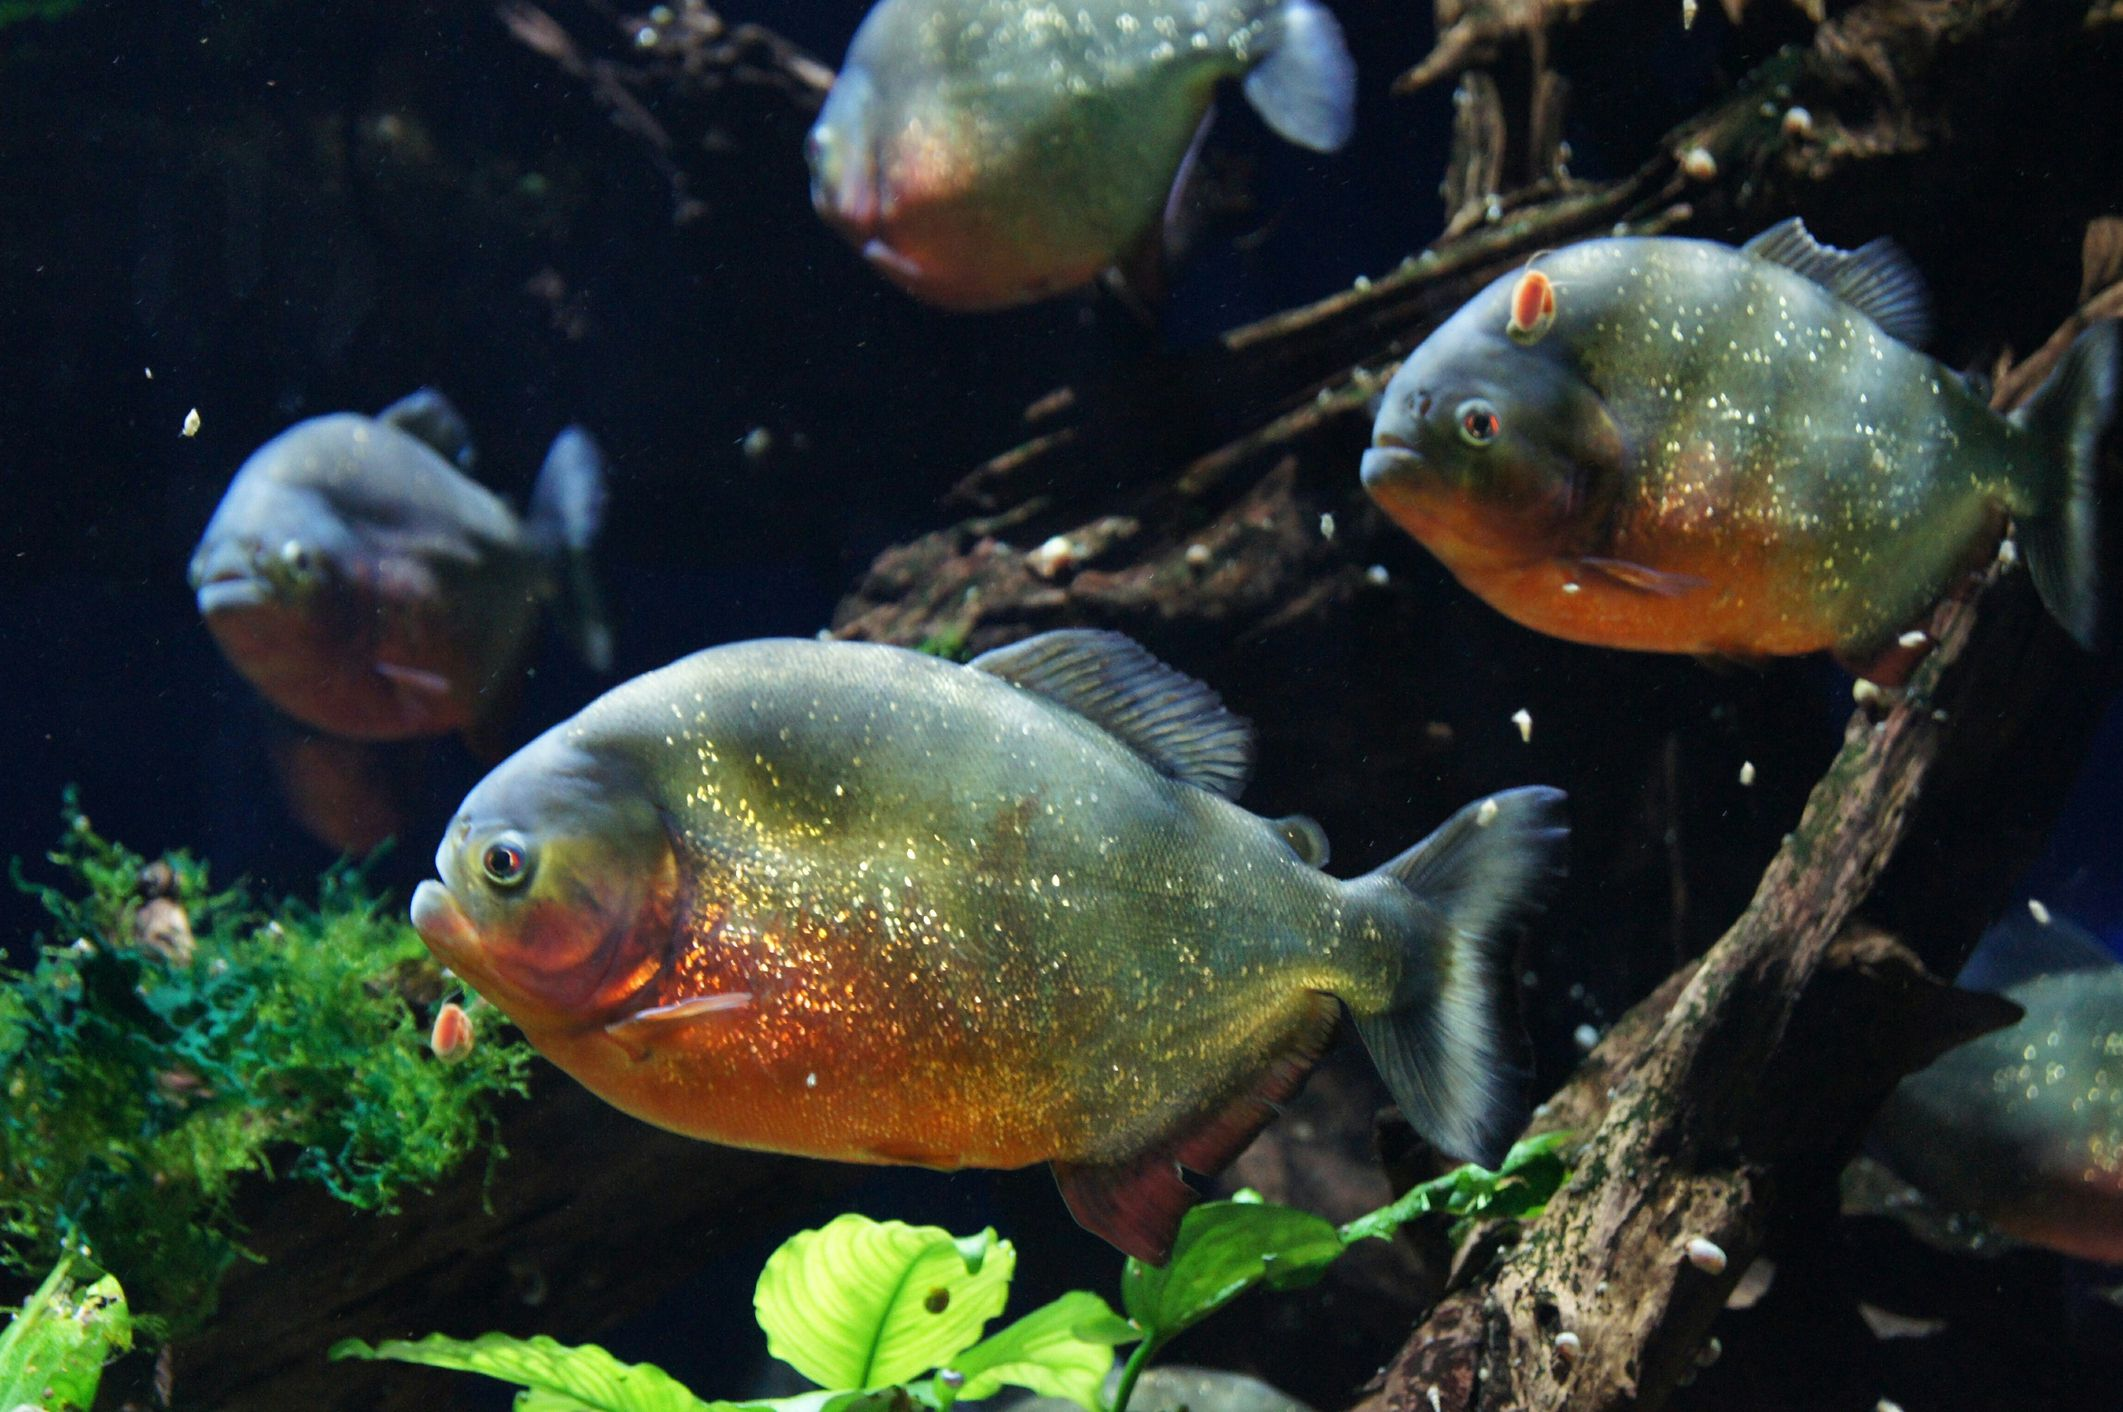 Freshwater aquarium fish information - Fish Names Beginning With B Freshwater Fish Breeds